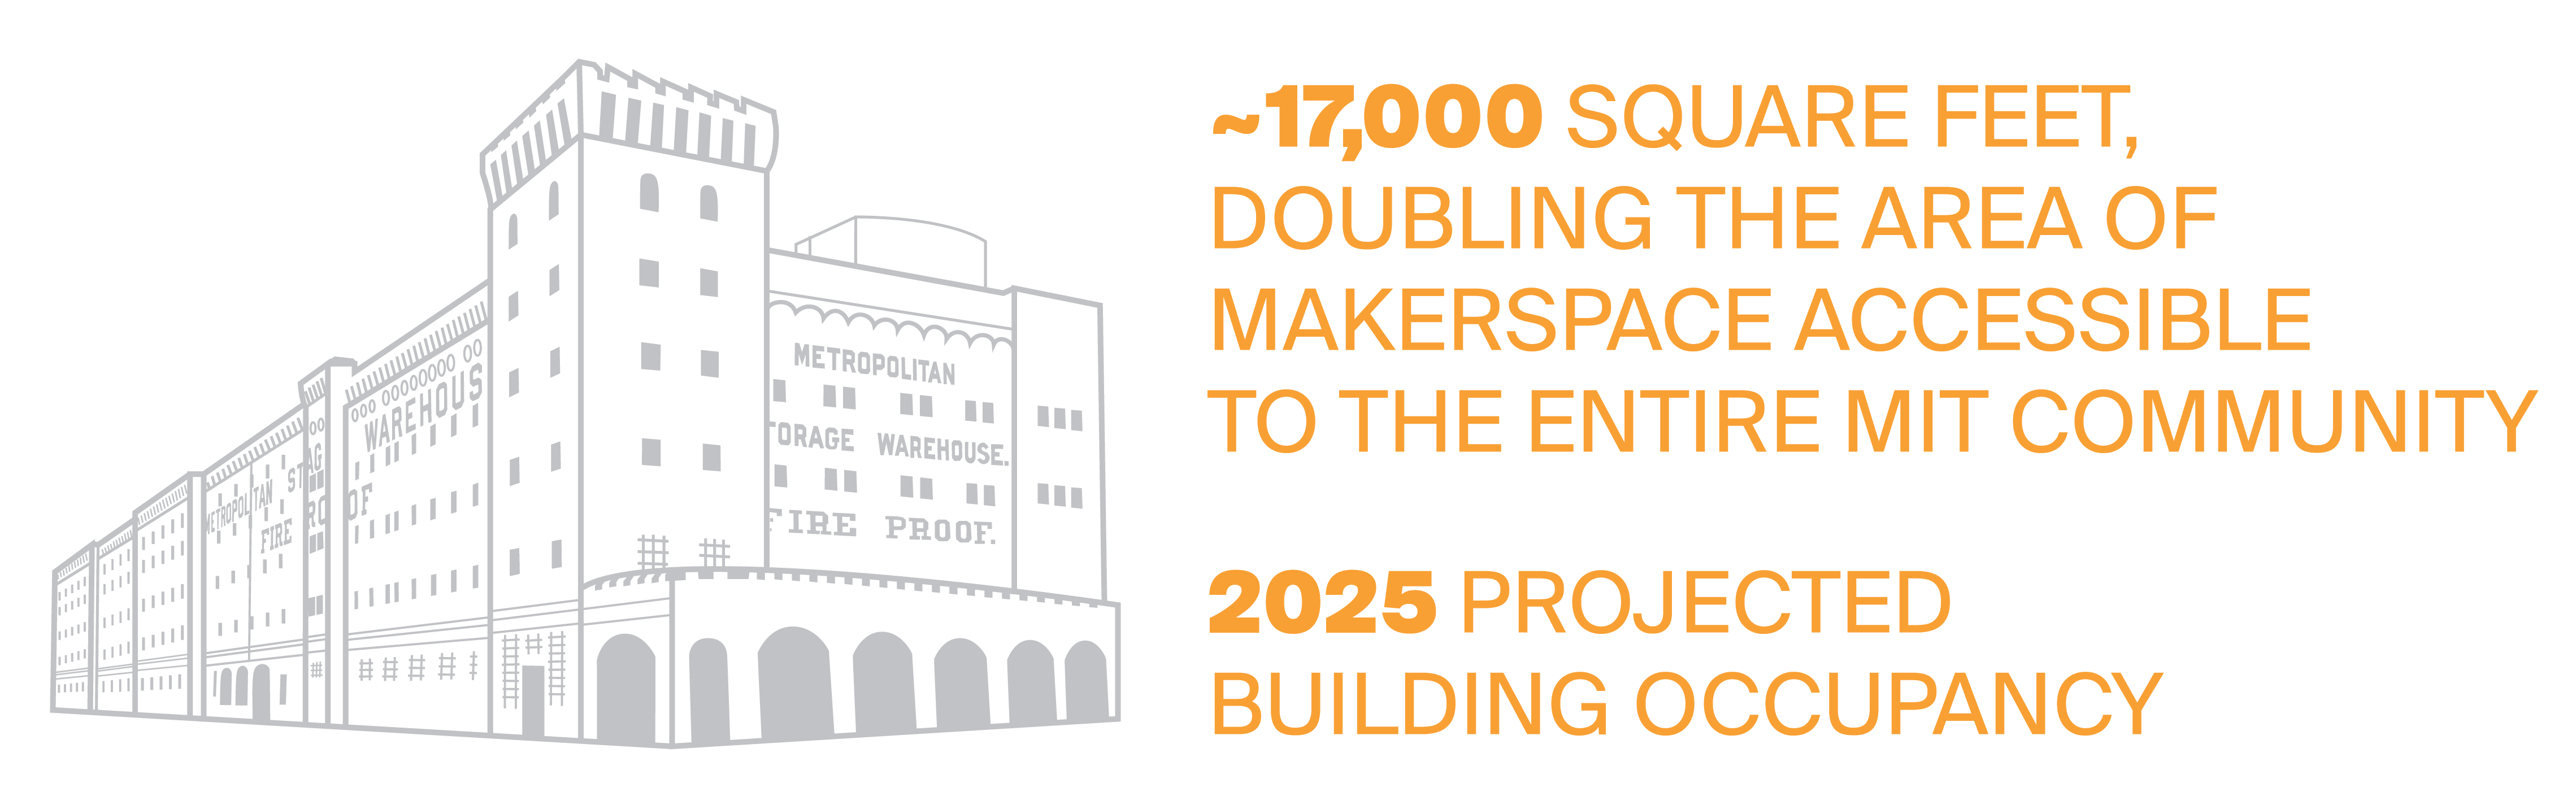 ~17,000 square feet, doubling the area of makerspace accessible to the entire MIT community; 2022 projectedbuilding occupancy